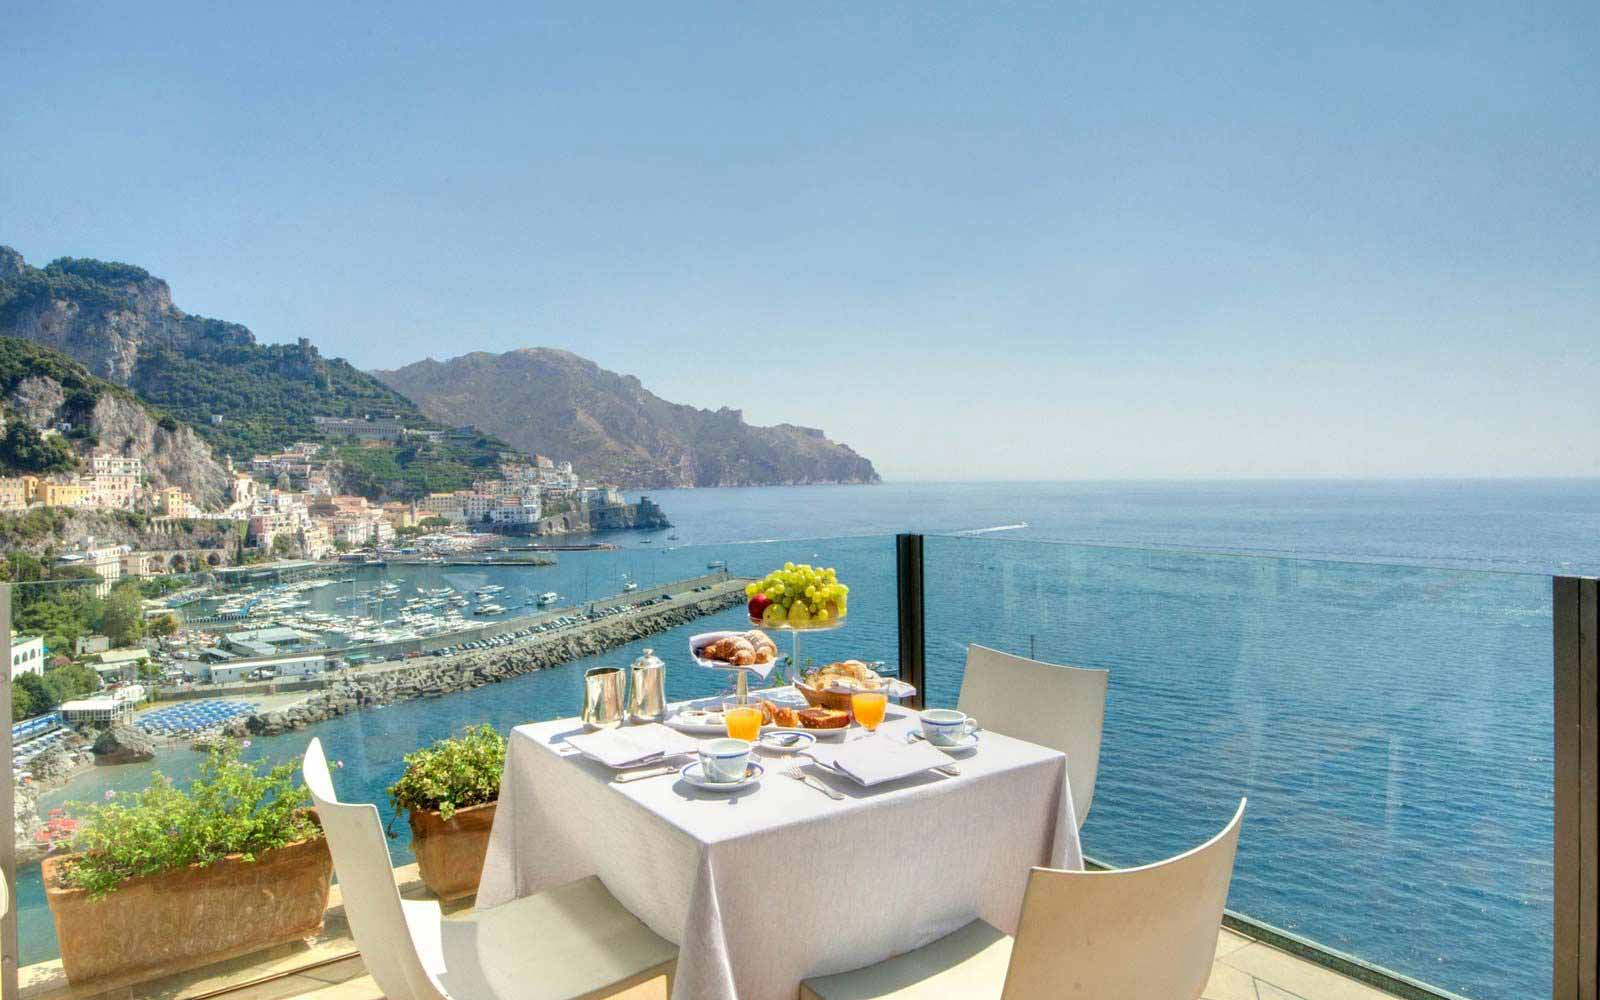 Breakfast at  Hotel Miramalfi